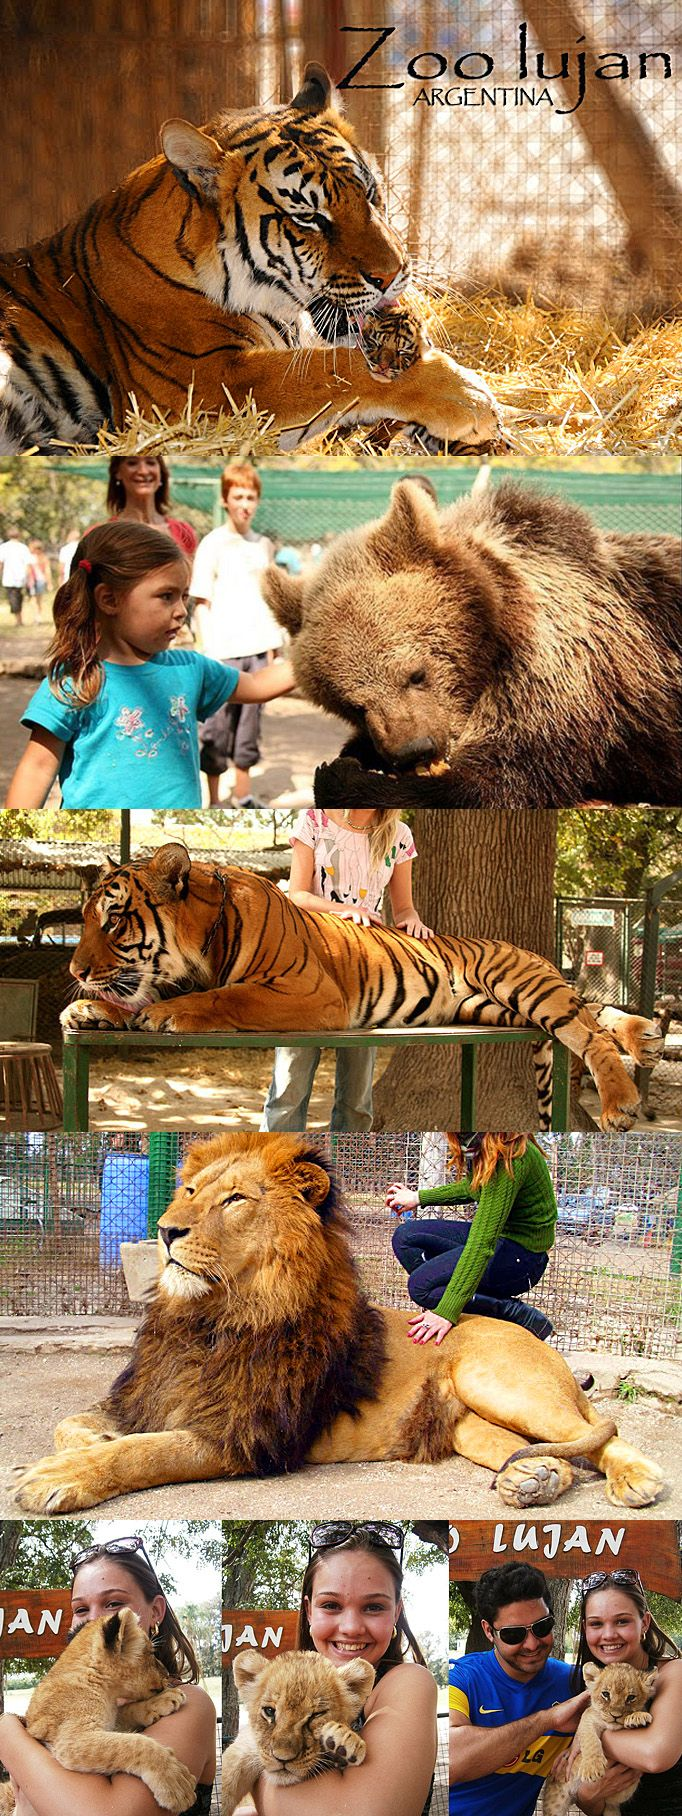 Zoo de Lujan, Argentina -need to go